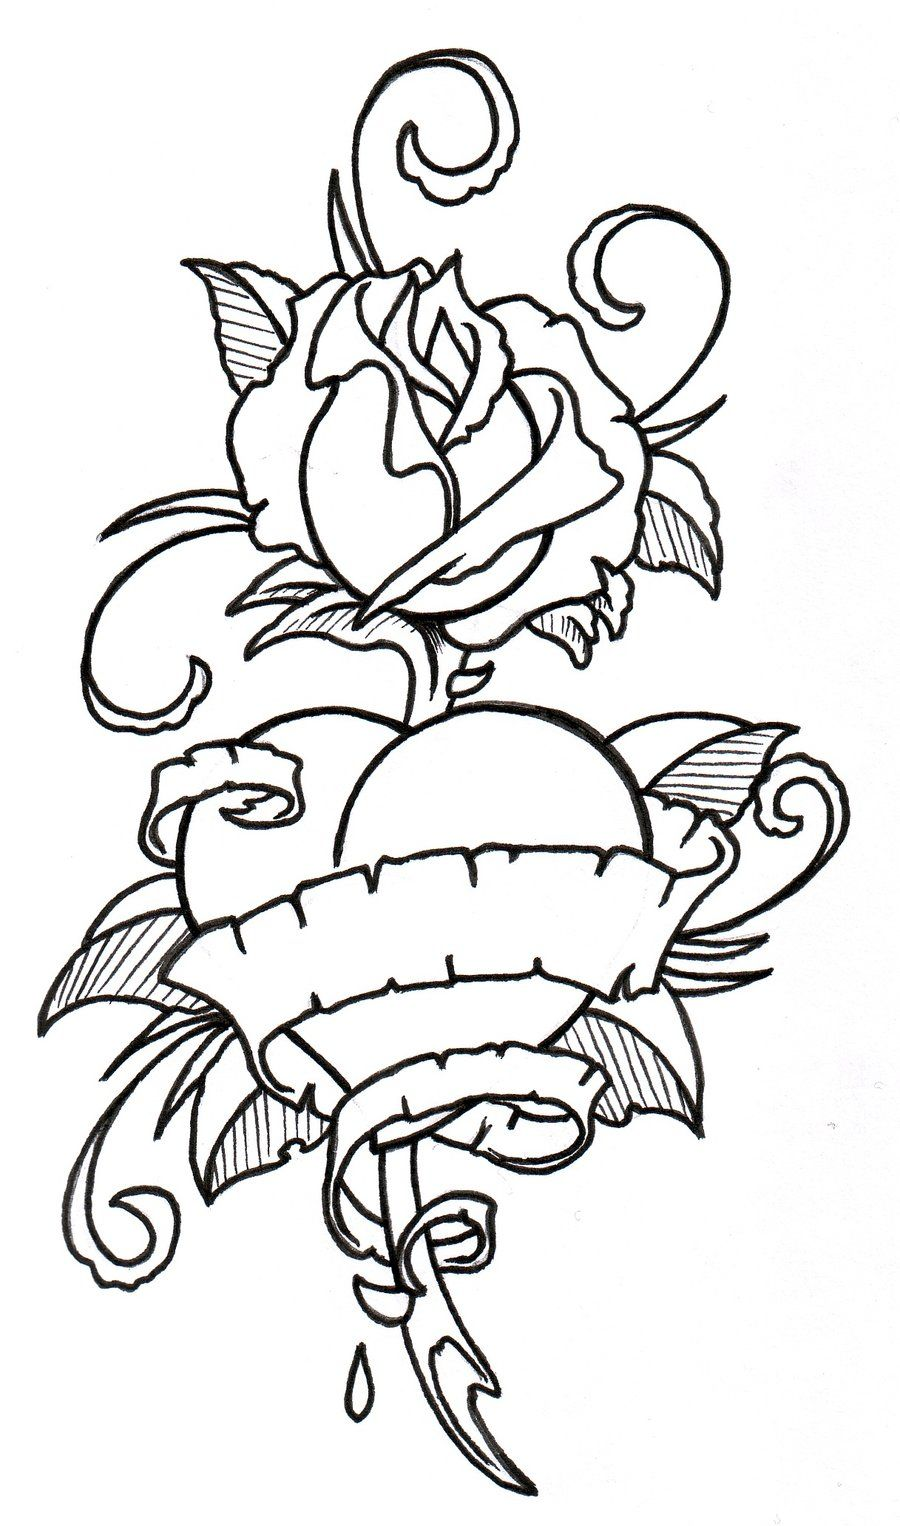 Roses Hearts Drawings : roses, hearts, drawings, RoseHeart, Outline, Vikingtattoo, DeviantART, Coloring, Pages,, Drawings,, Drawing